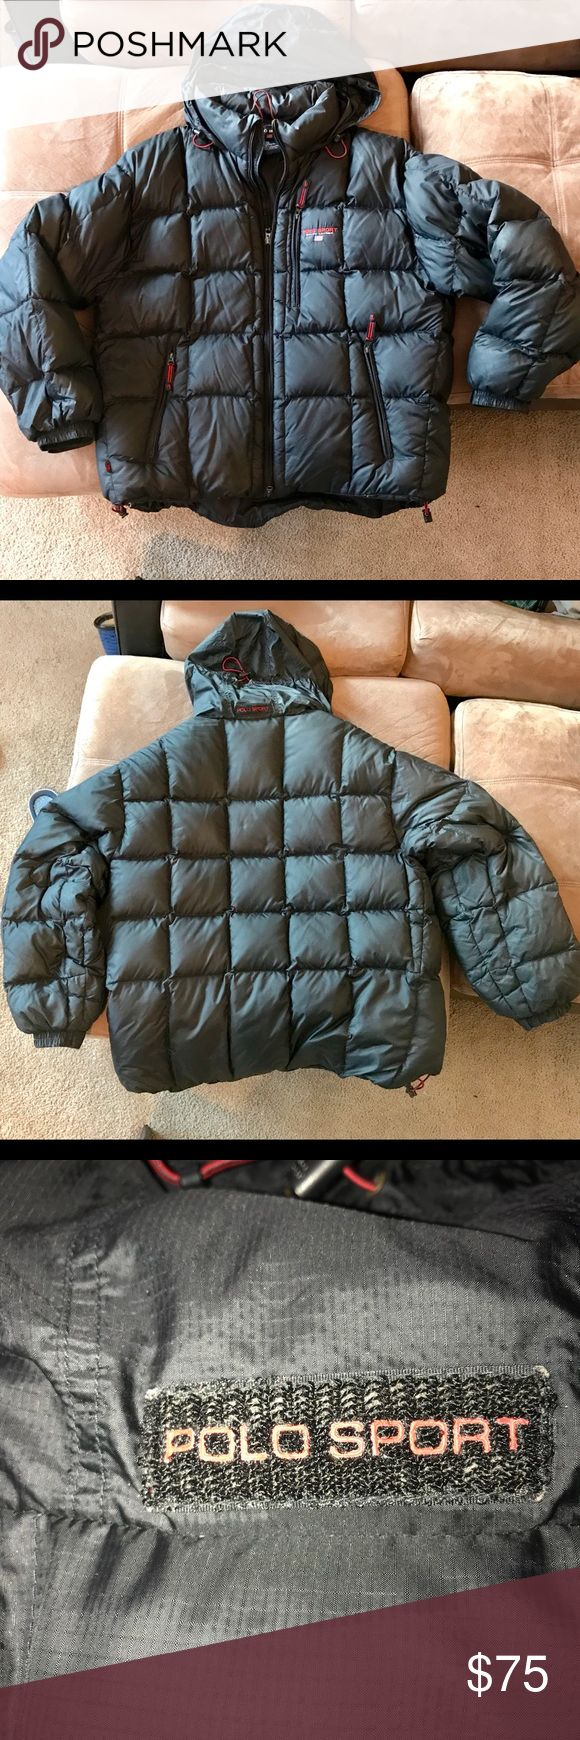 Ralph Lauren Sport Puffer Down Coat XXL Rare Mens Vintage 90s Polo Sport Ralph Lauren Goose Down Puffer Coat Siz XXL.  Black with Red detail at zippers and drawstrings. Drawstring at the bottom.  In very good shape. Ralph Lauren Sport Jackets & Coats Puffers